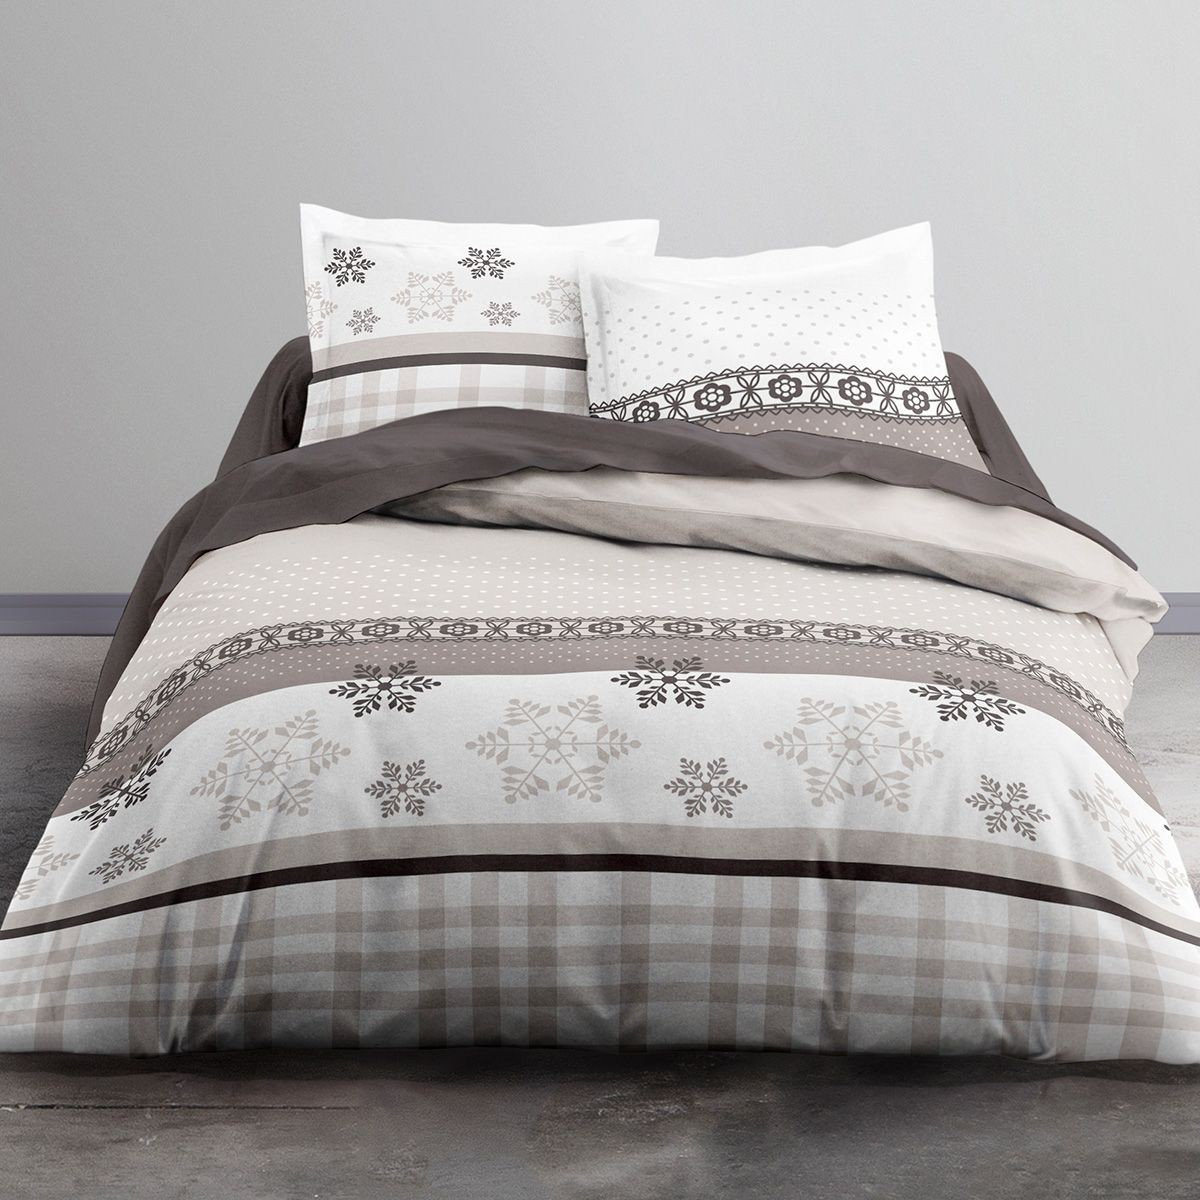 Housse de couette 220x240 TODAY ROSIE + 2 taies 100% coton flanelle 98f7efae0185